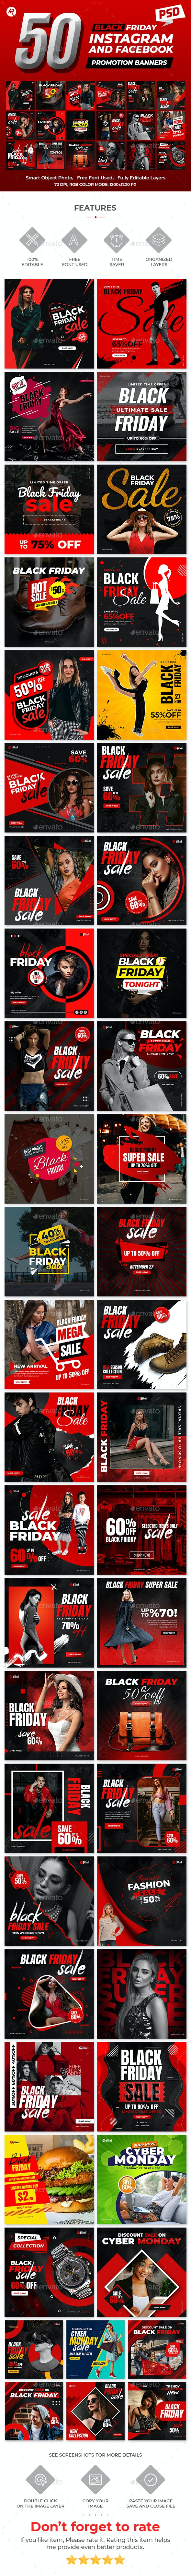 50-Black Friday Promotional Banners - Social Media Web Elements